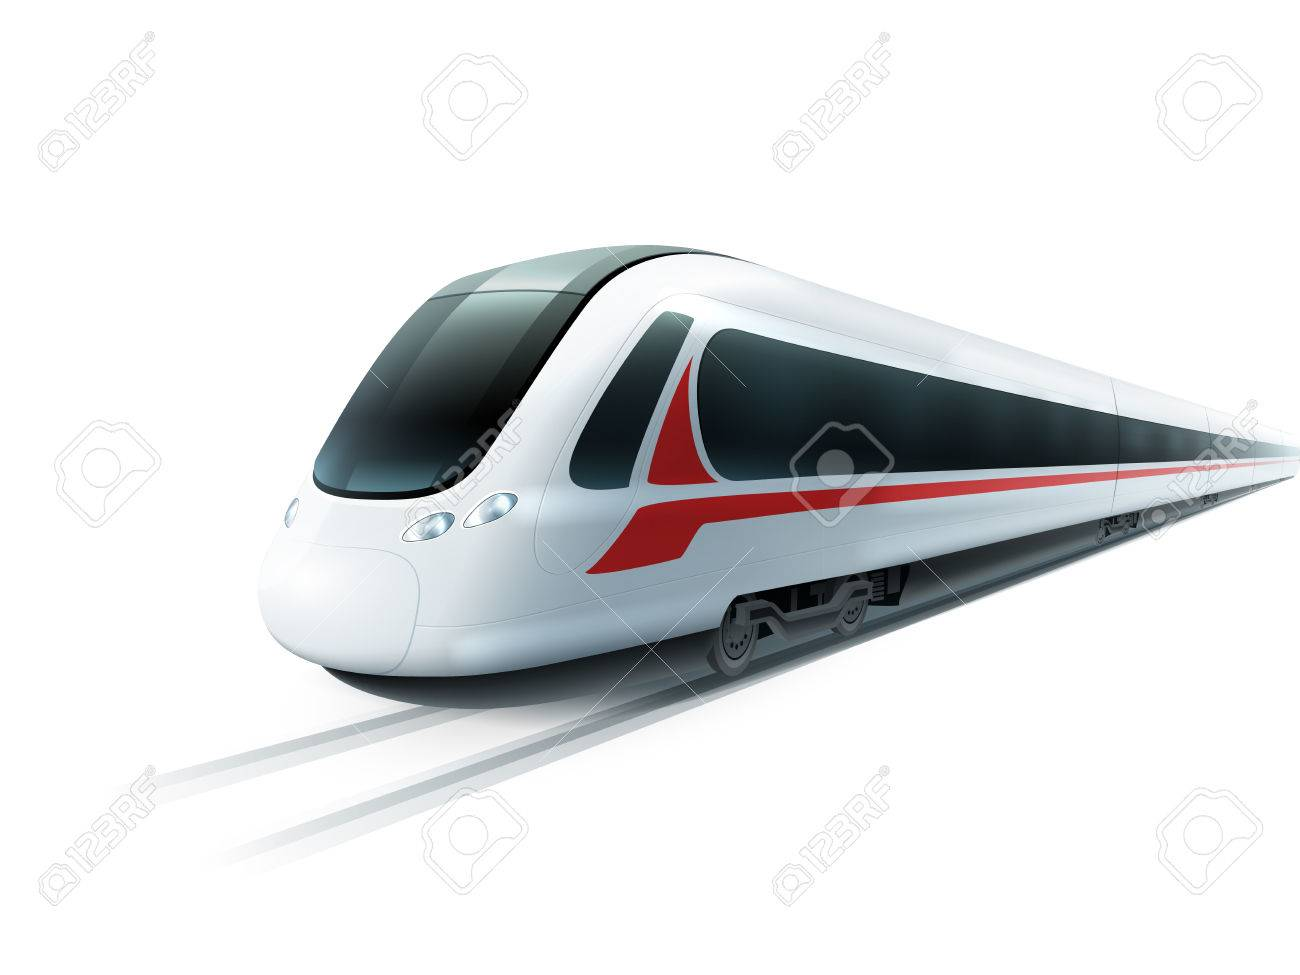 Super streamlined high-speed train on white background emblem realistic image ad poster isolated vector illustration - 54692337